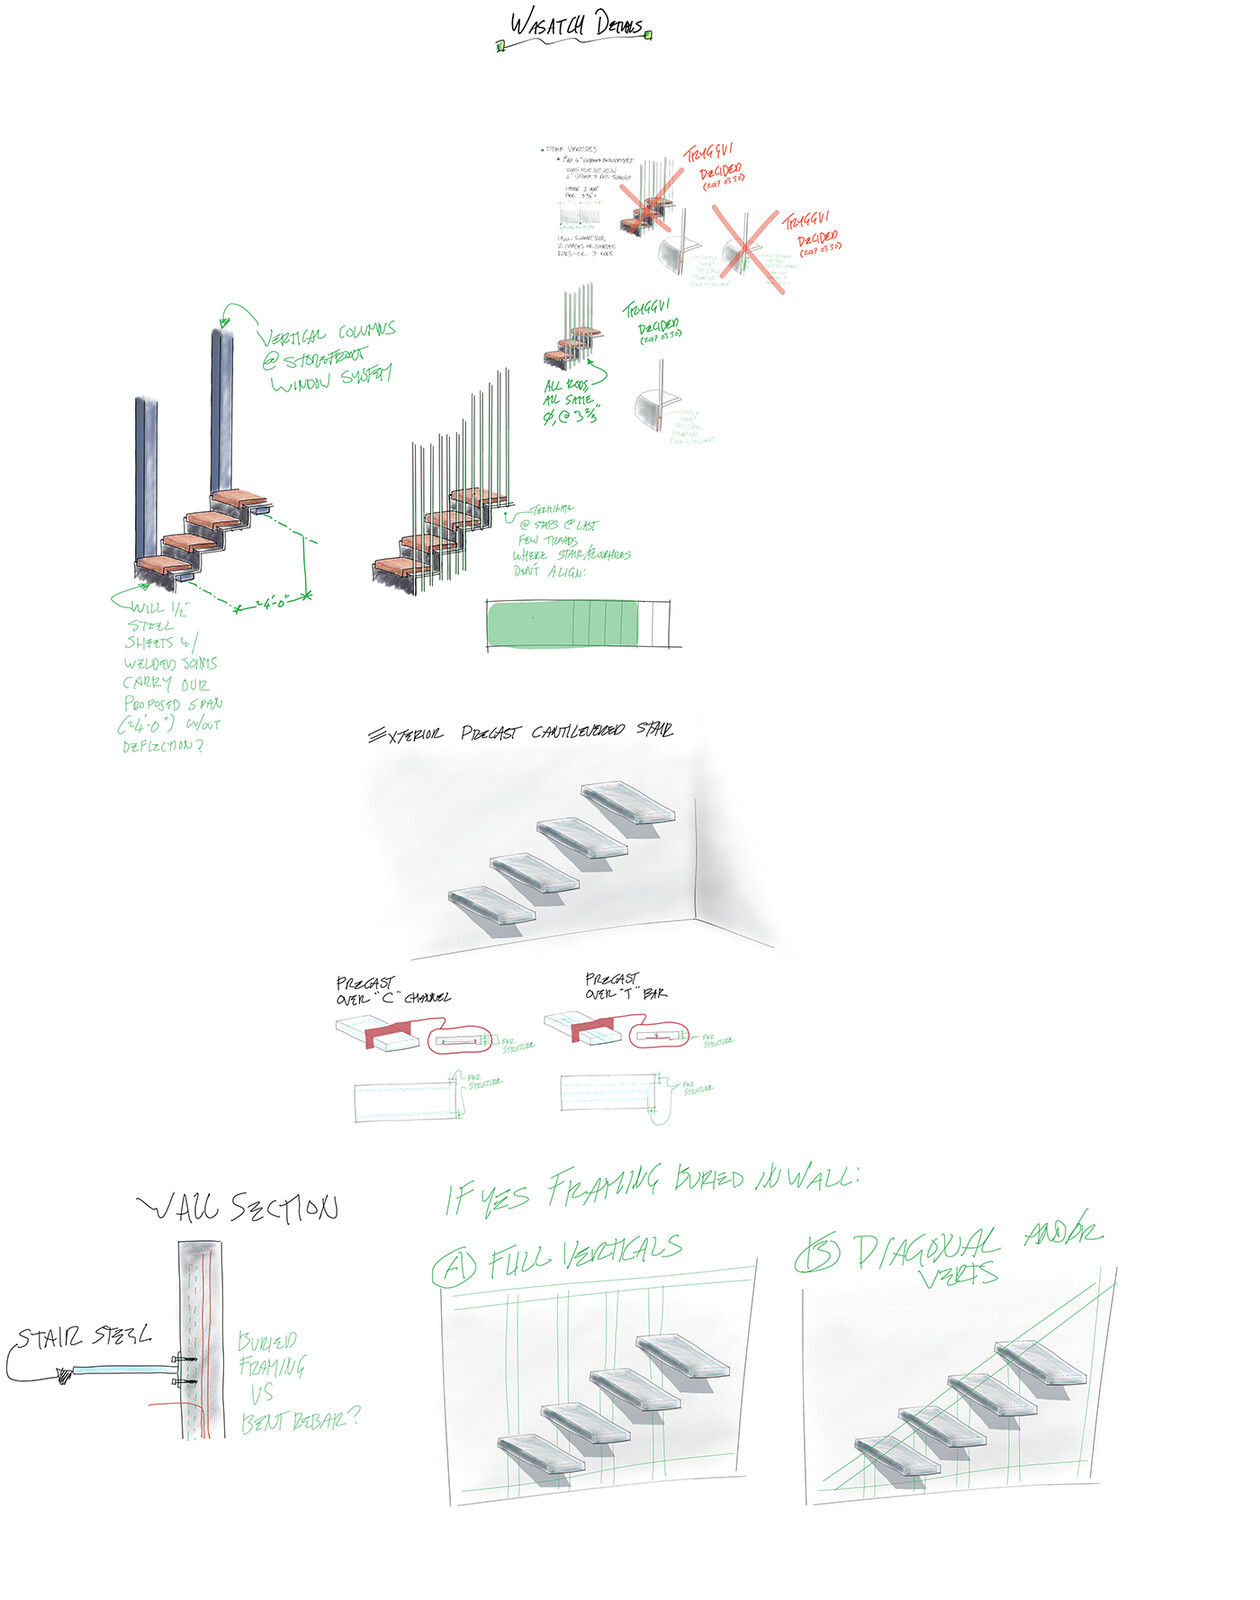 Here is another hand-drawn sketch originating some other stair ideas: as you can see, computers are not required for 3D thinking. That's how a designer should think to begin with!